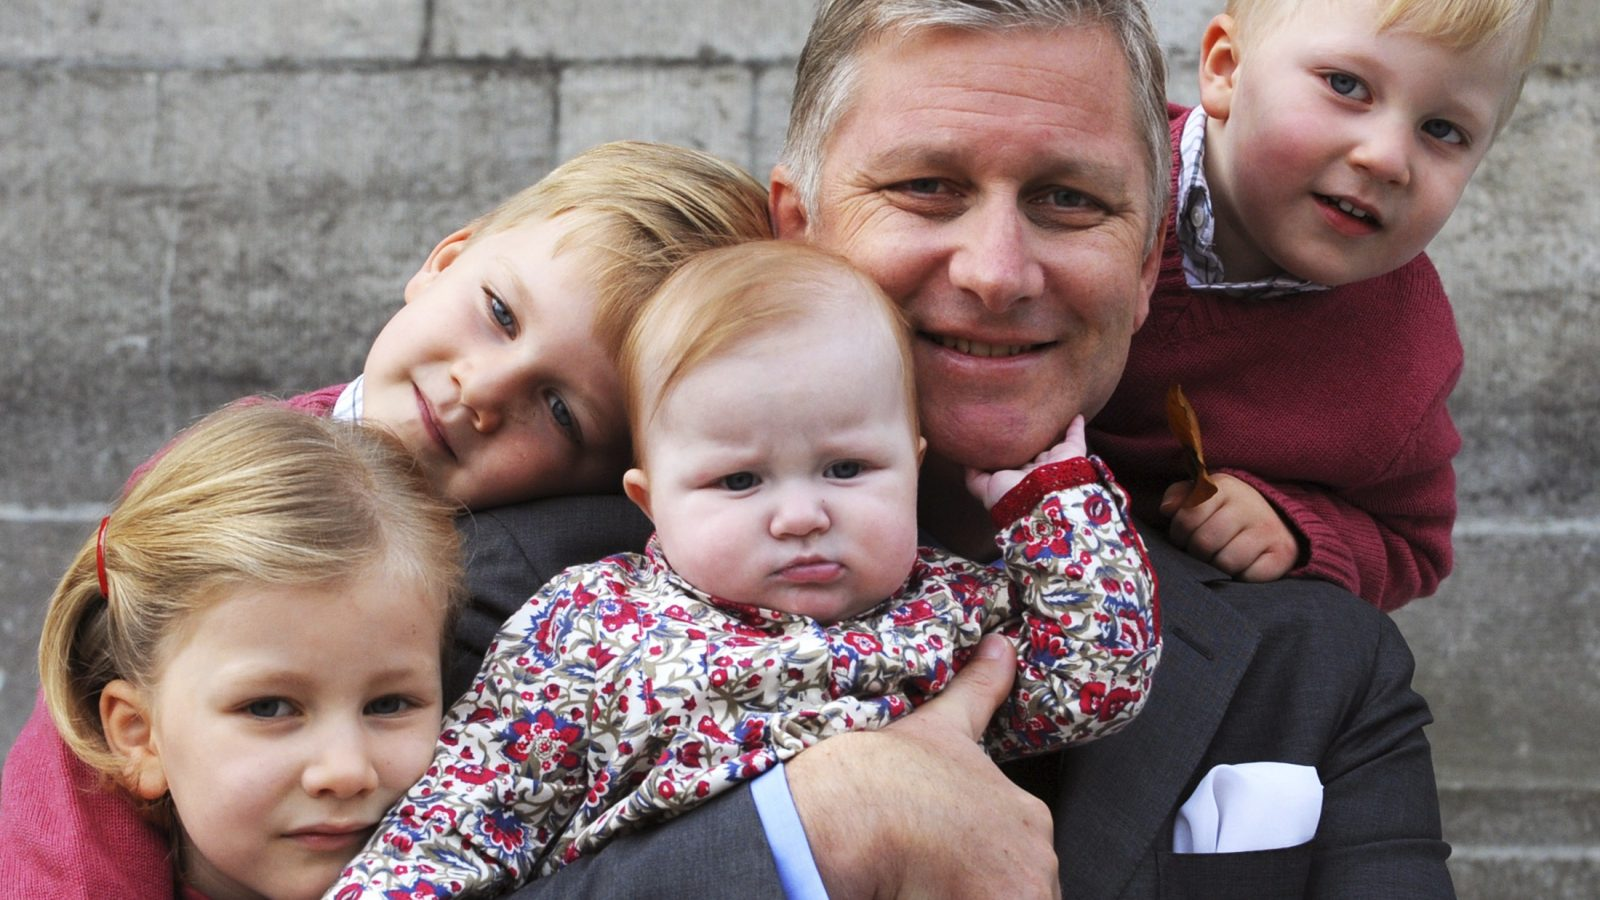 Belgium's Crown Prince Philippe poses with his children in this photograph taken on October 19, 2008 in Brussels and released by the Royal Palace on January 2, 2009. L to R are: Princess Elisabeth, Prince Gabriel, Princess Eleonore, Crown Prince Philippe and Prince Emmanuel.    REUTERS/Royal Palace   (BELGIUM) - RTR22ZYG